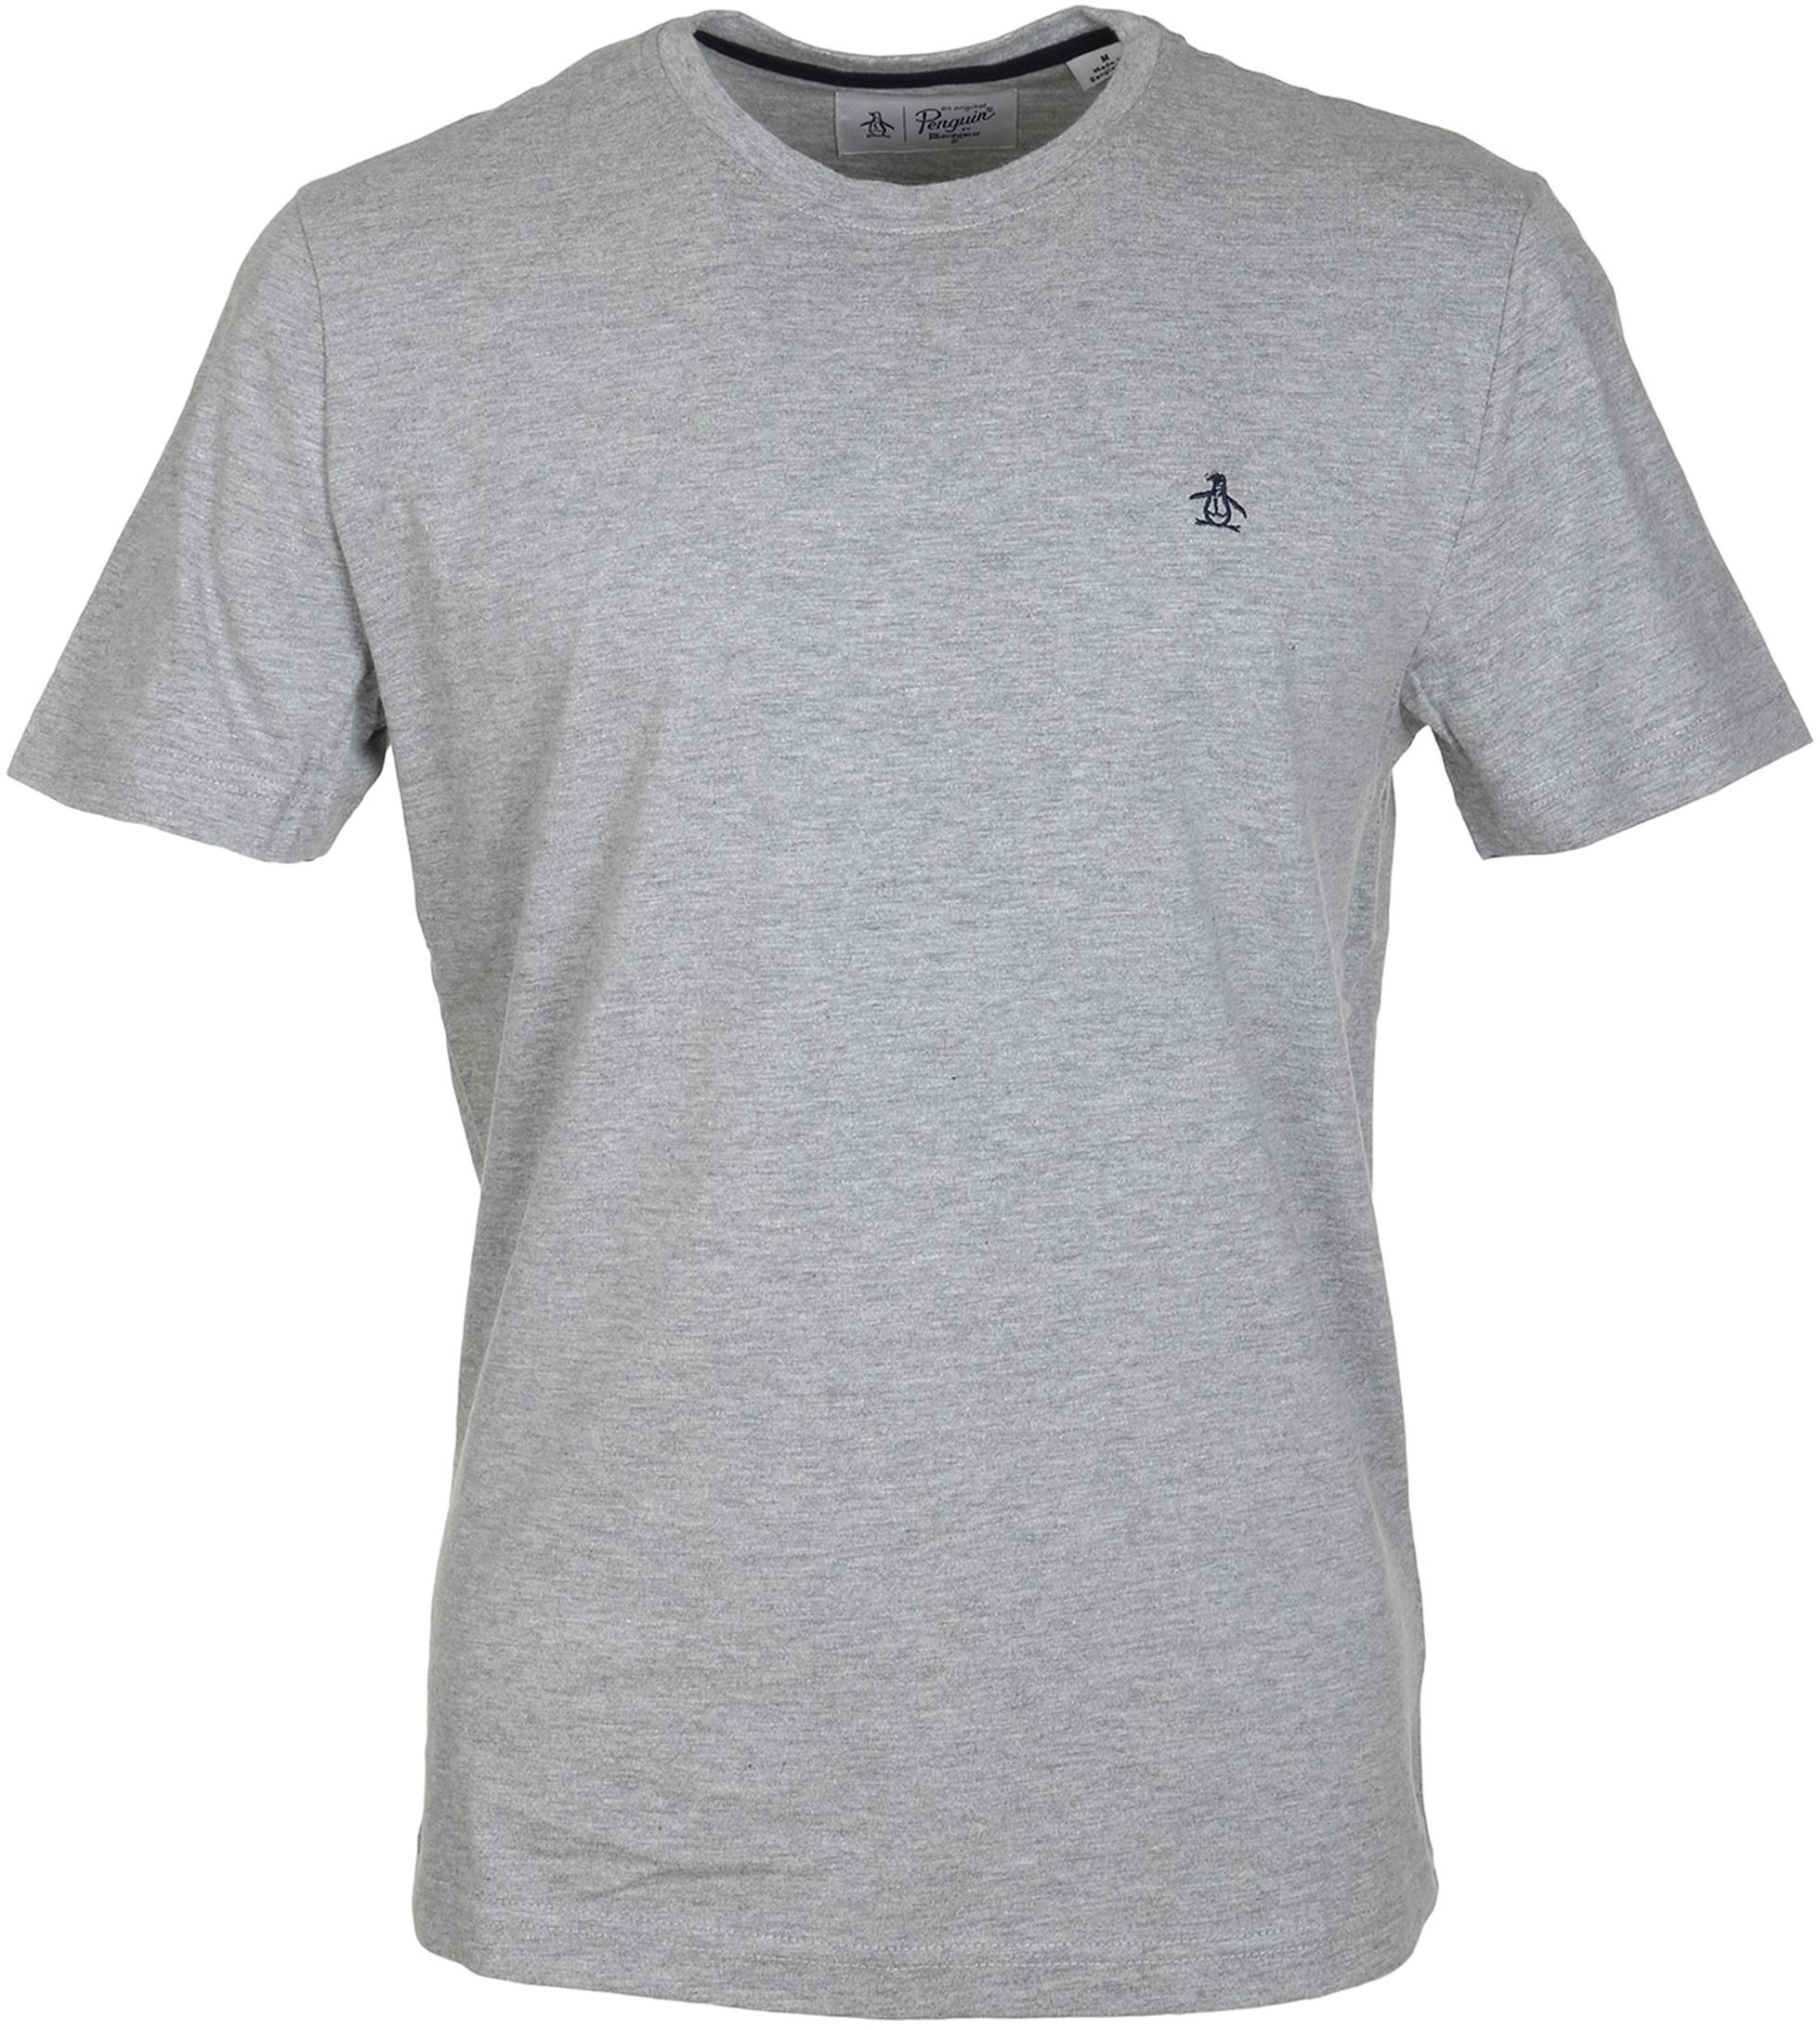 Original Penguin T-shirt Grijs foto 0